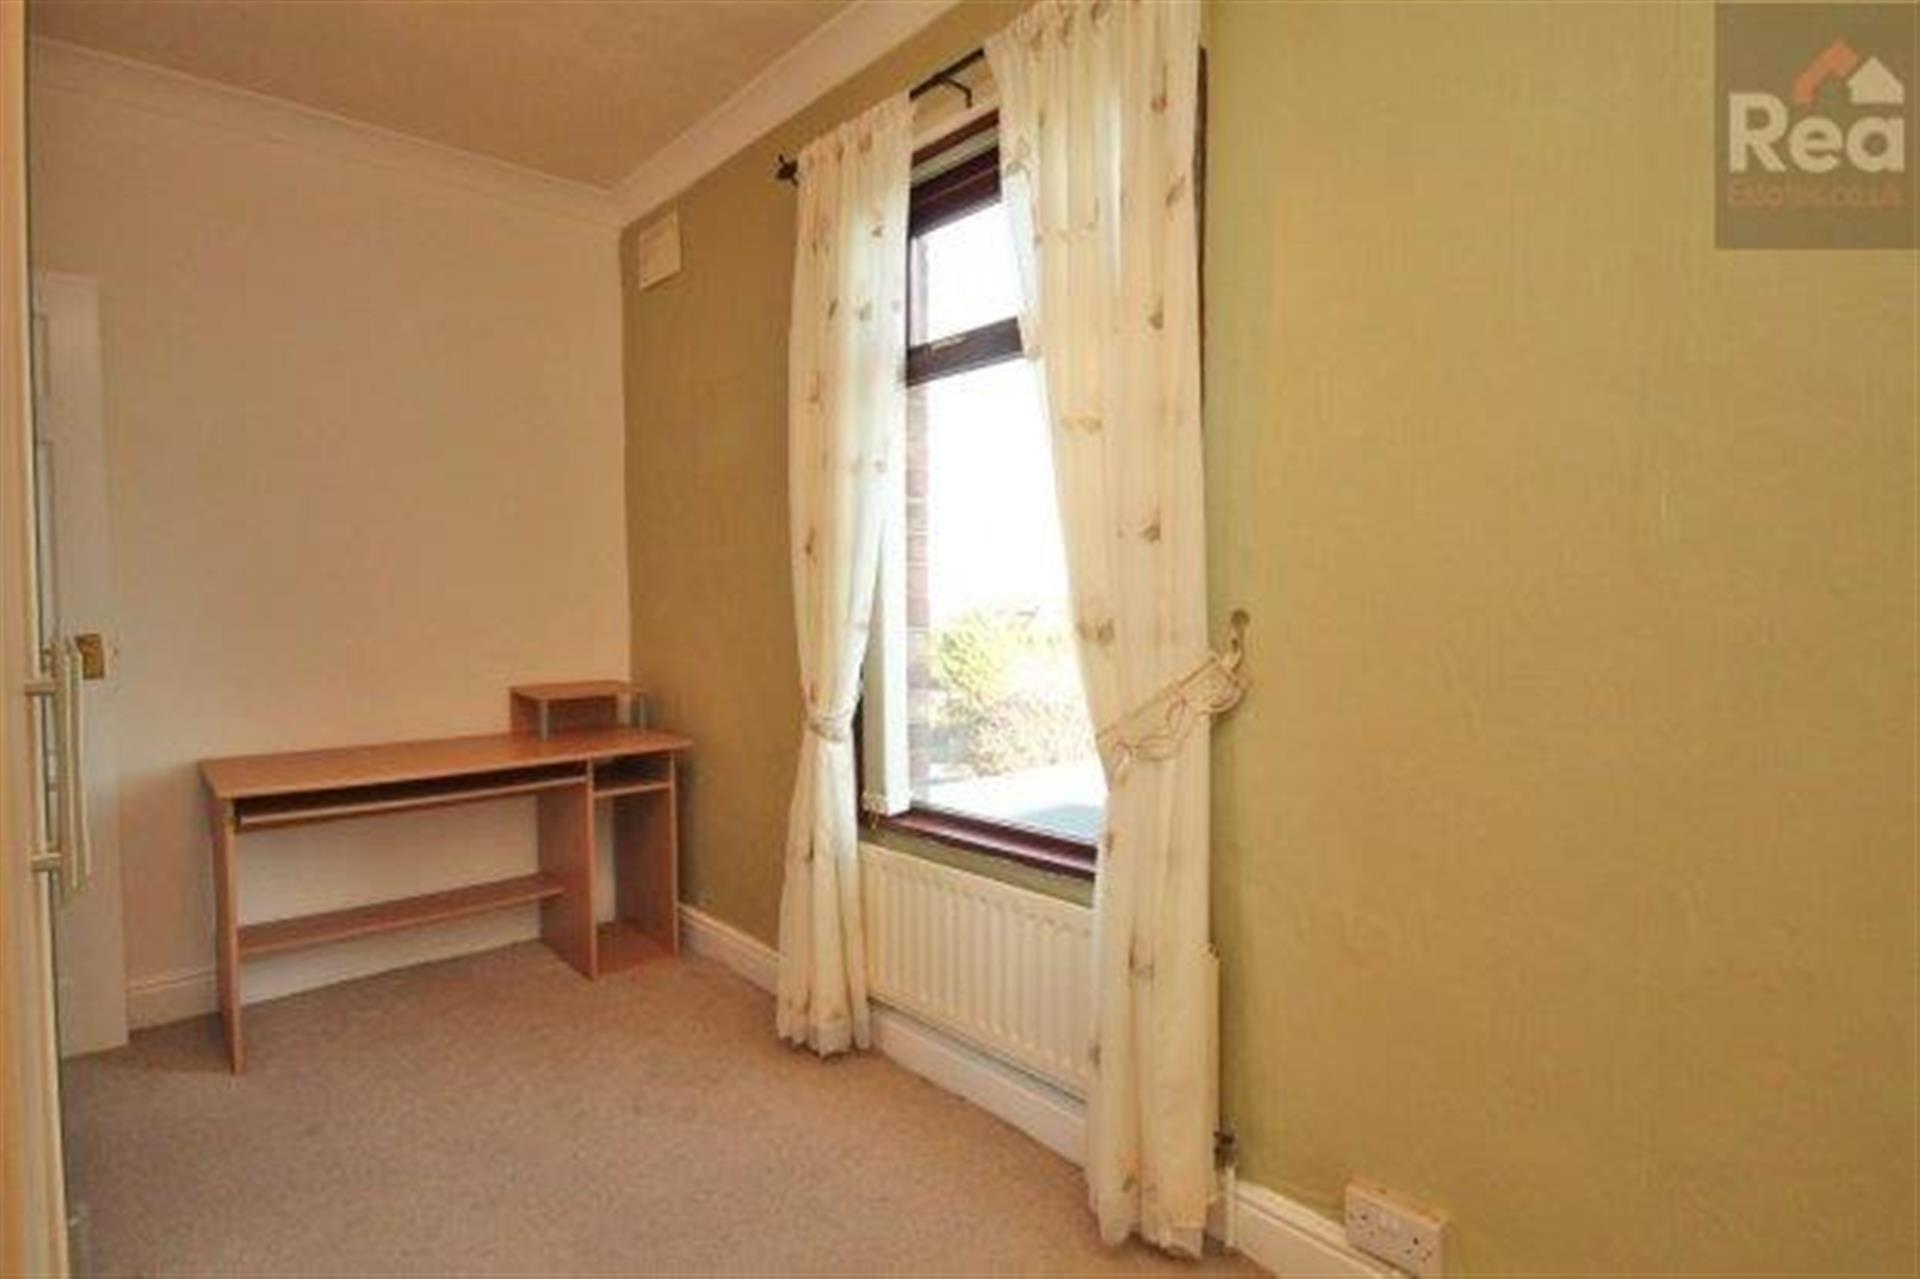 2 bedroom terraced house To Let in West Auckland - photograph 6.